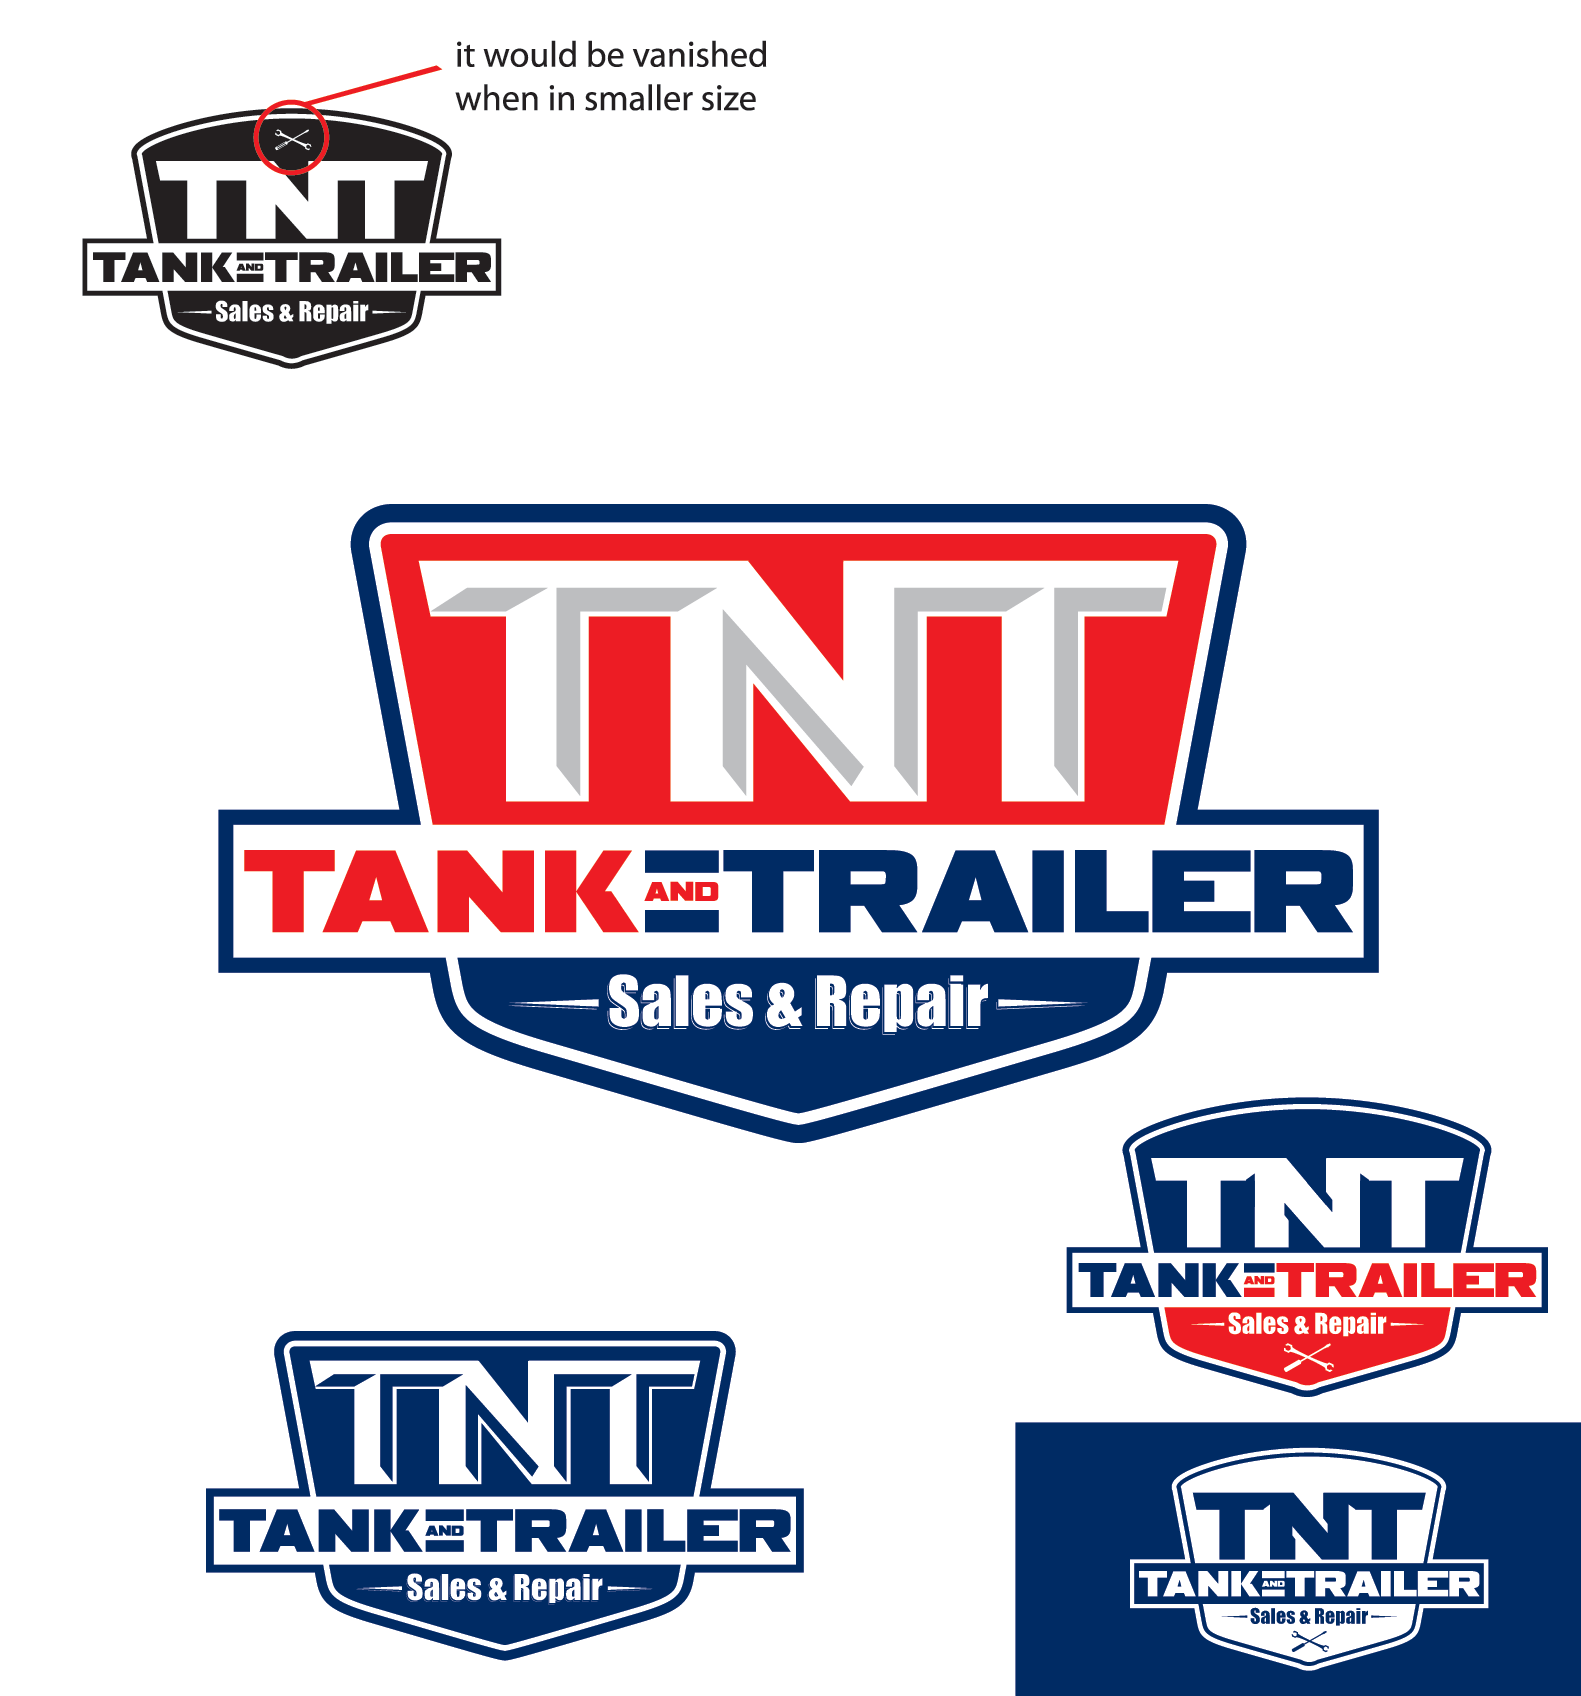 Create a vintage style logo with a modern touch for a dealership re-brand